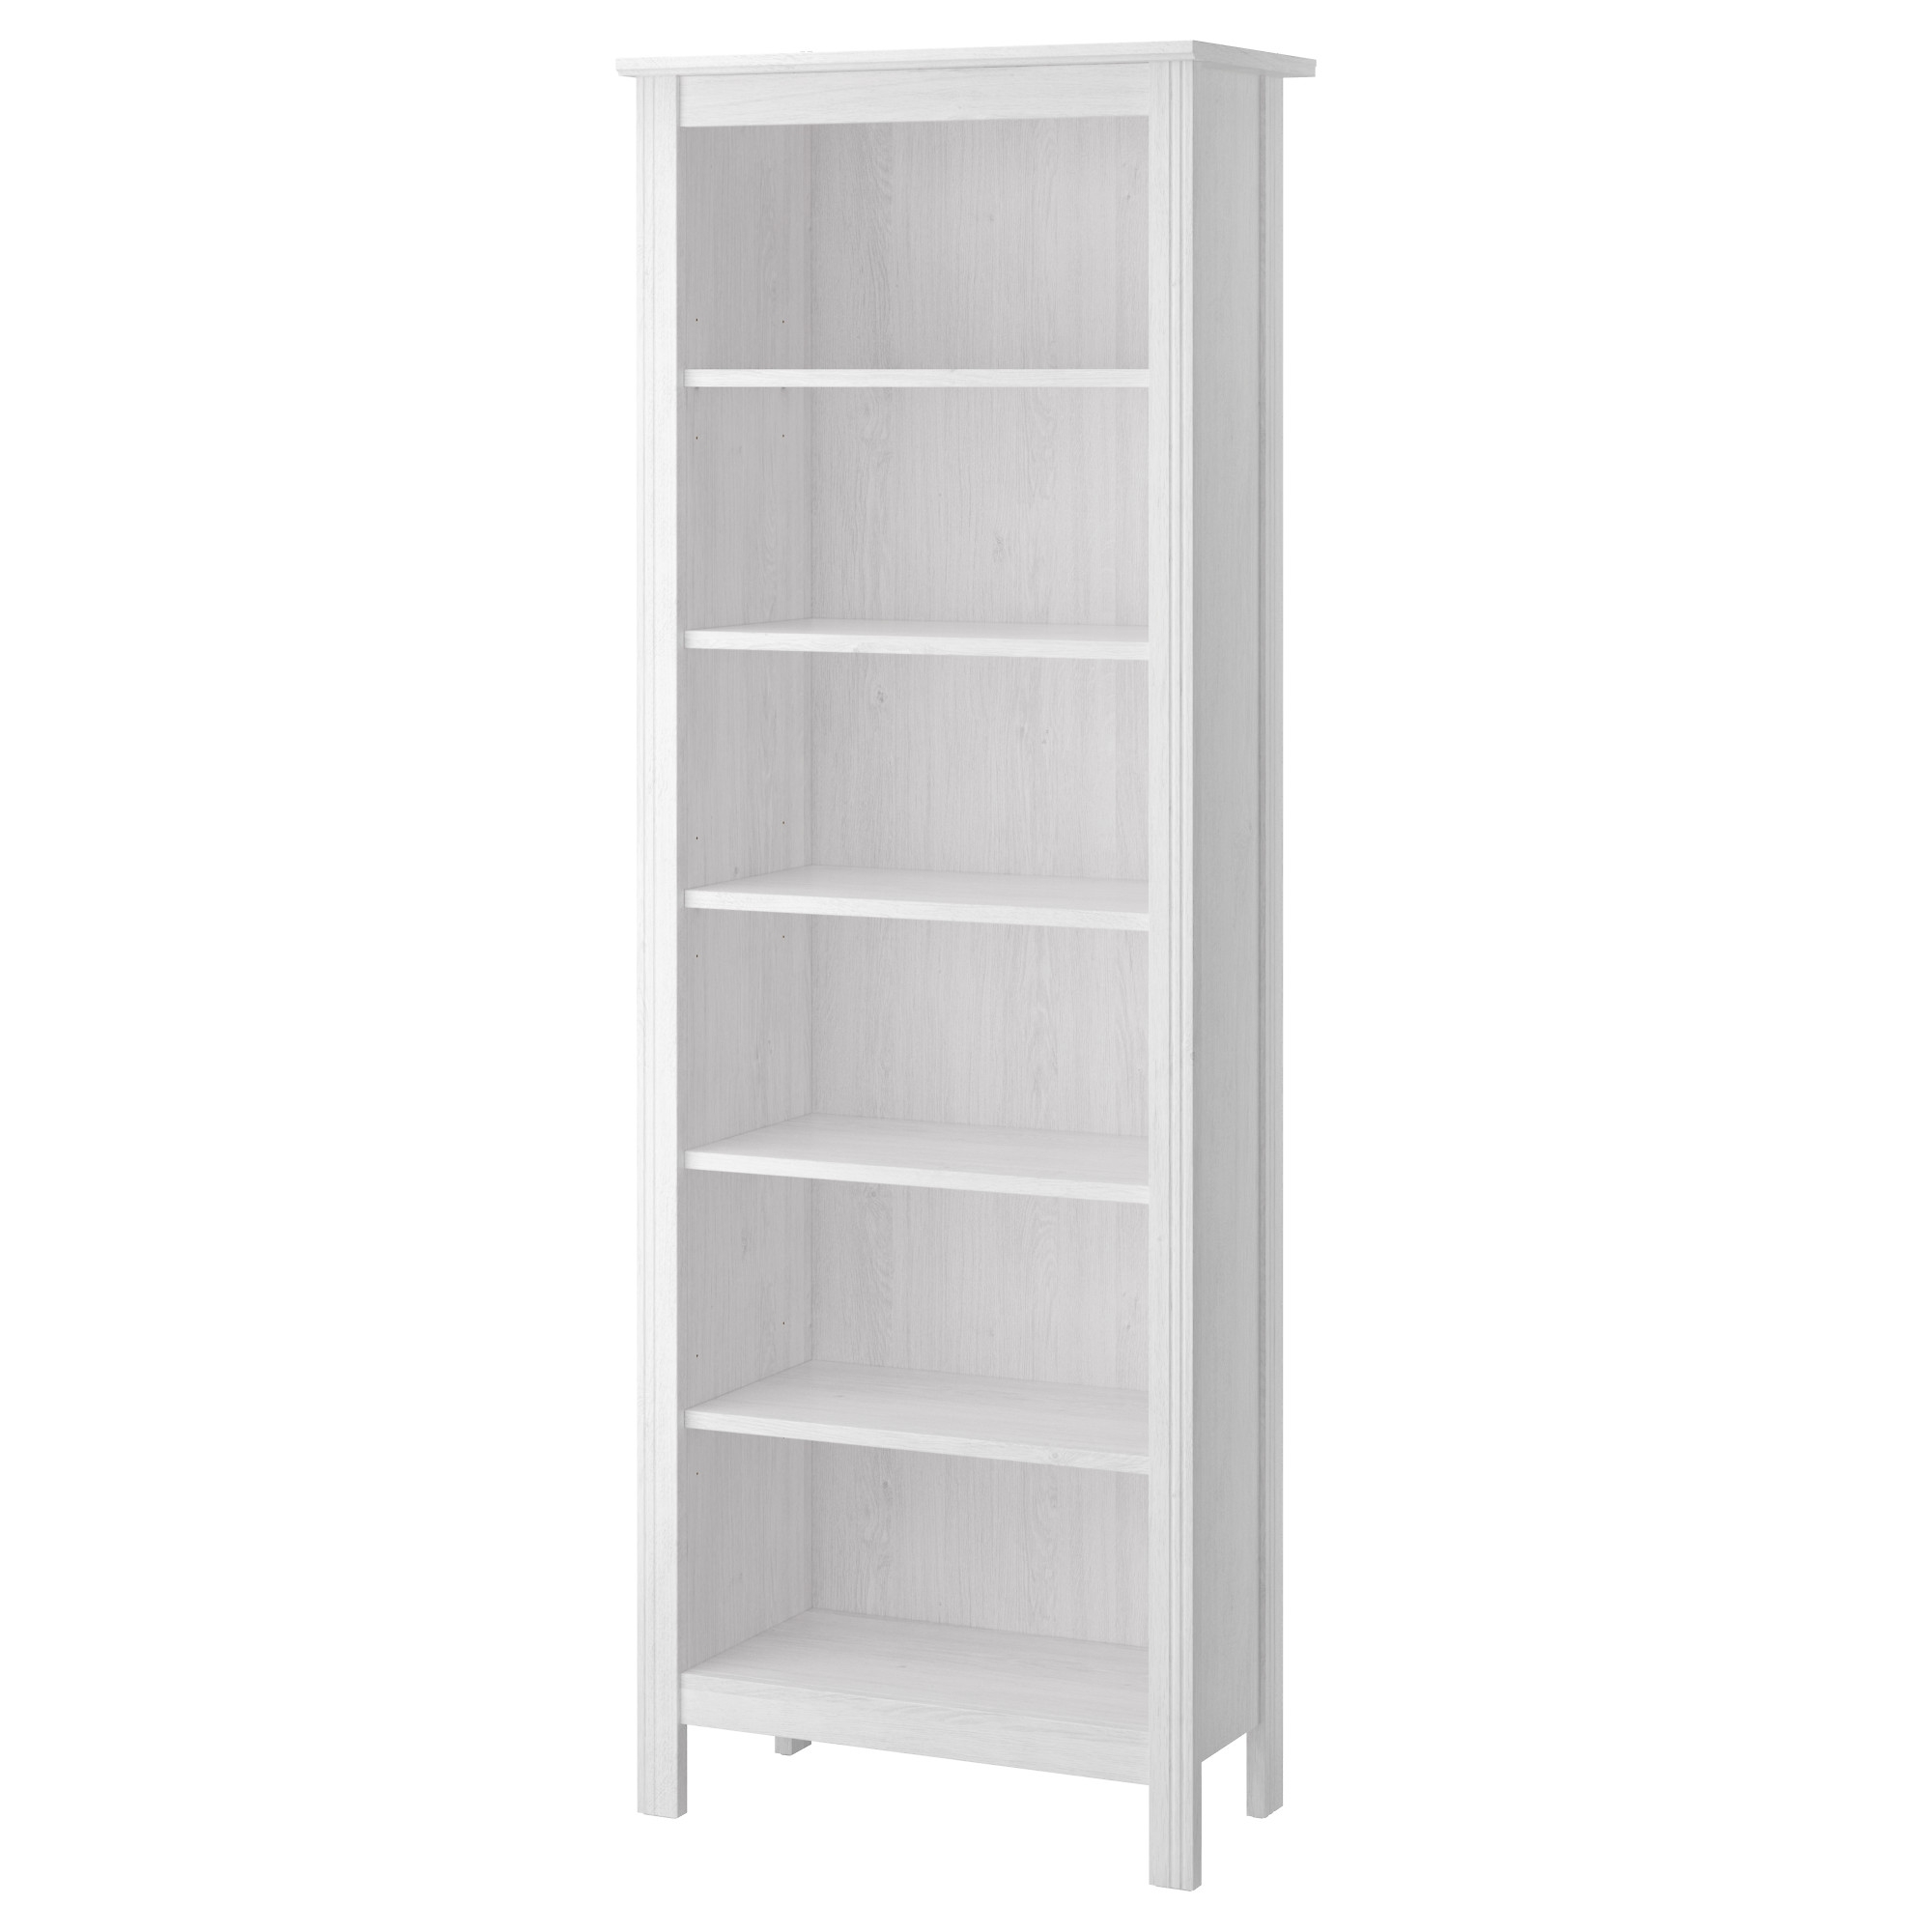 Bookcases Modern Traditional Ikea With Regard To Extra Large Bookcase (View 15 of 15)